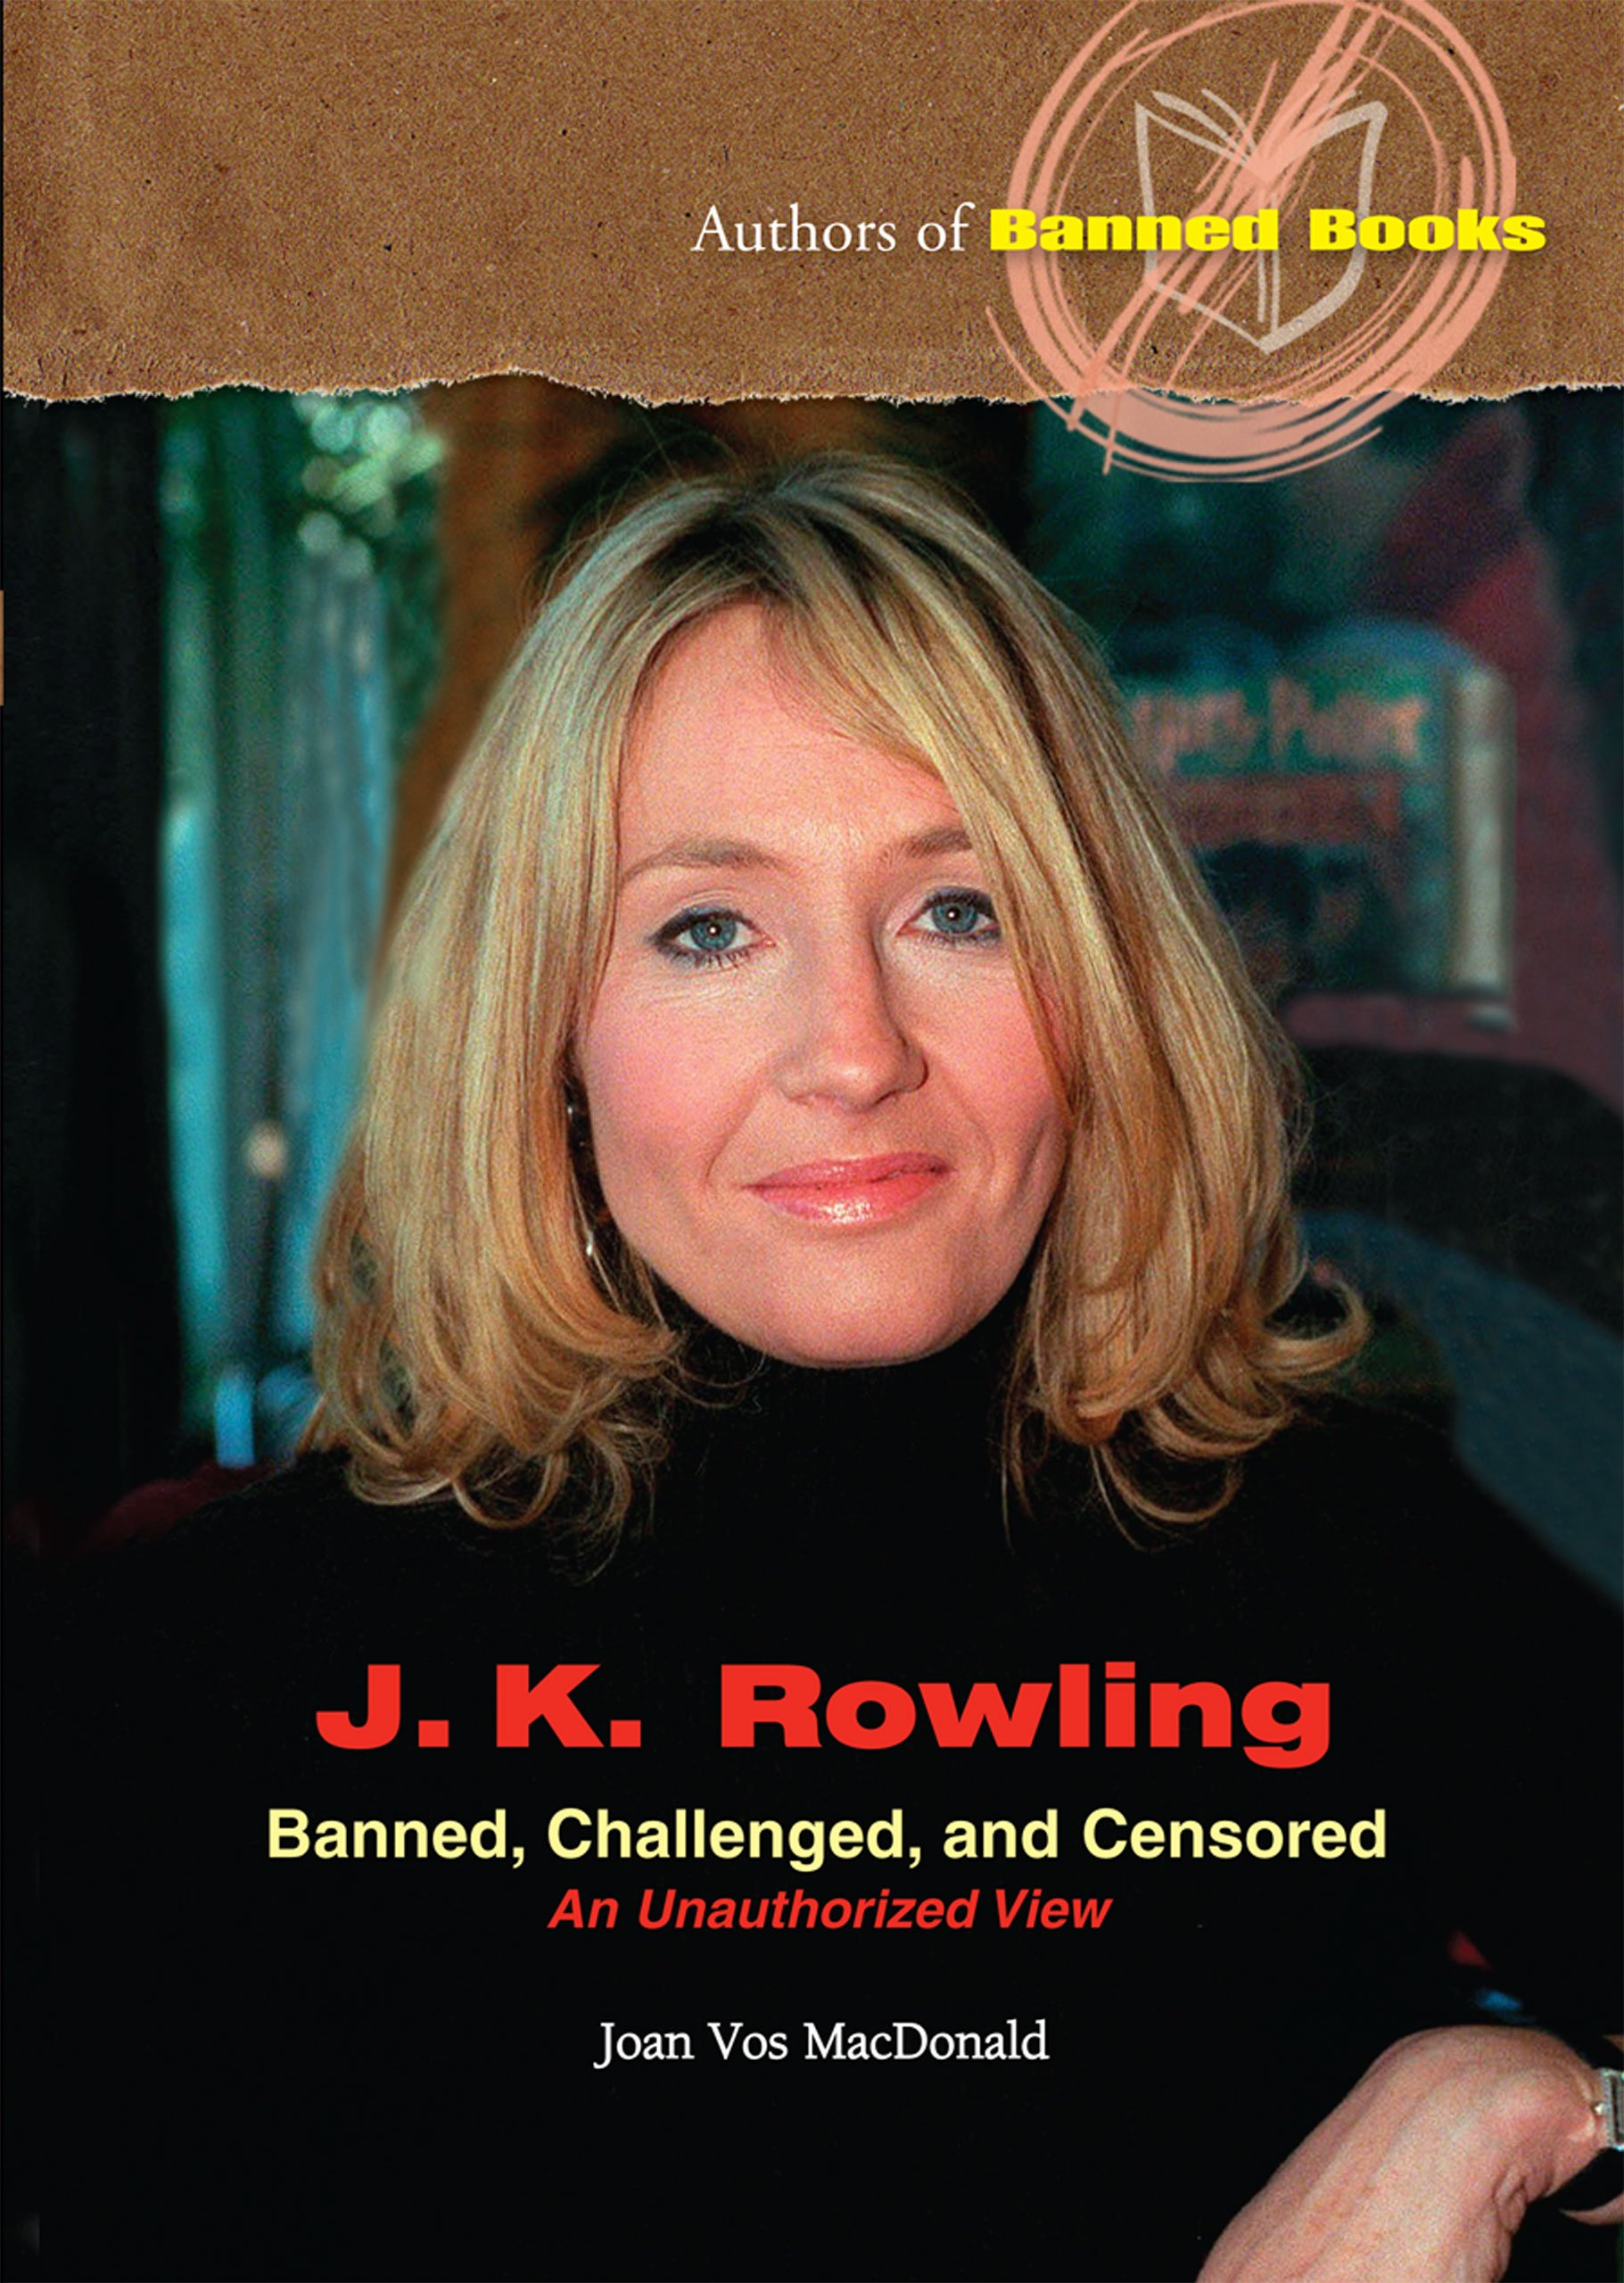 Download J.K. Rowling: Banned, Challenged, And Censored (Authors of Banned Books) PDF